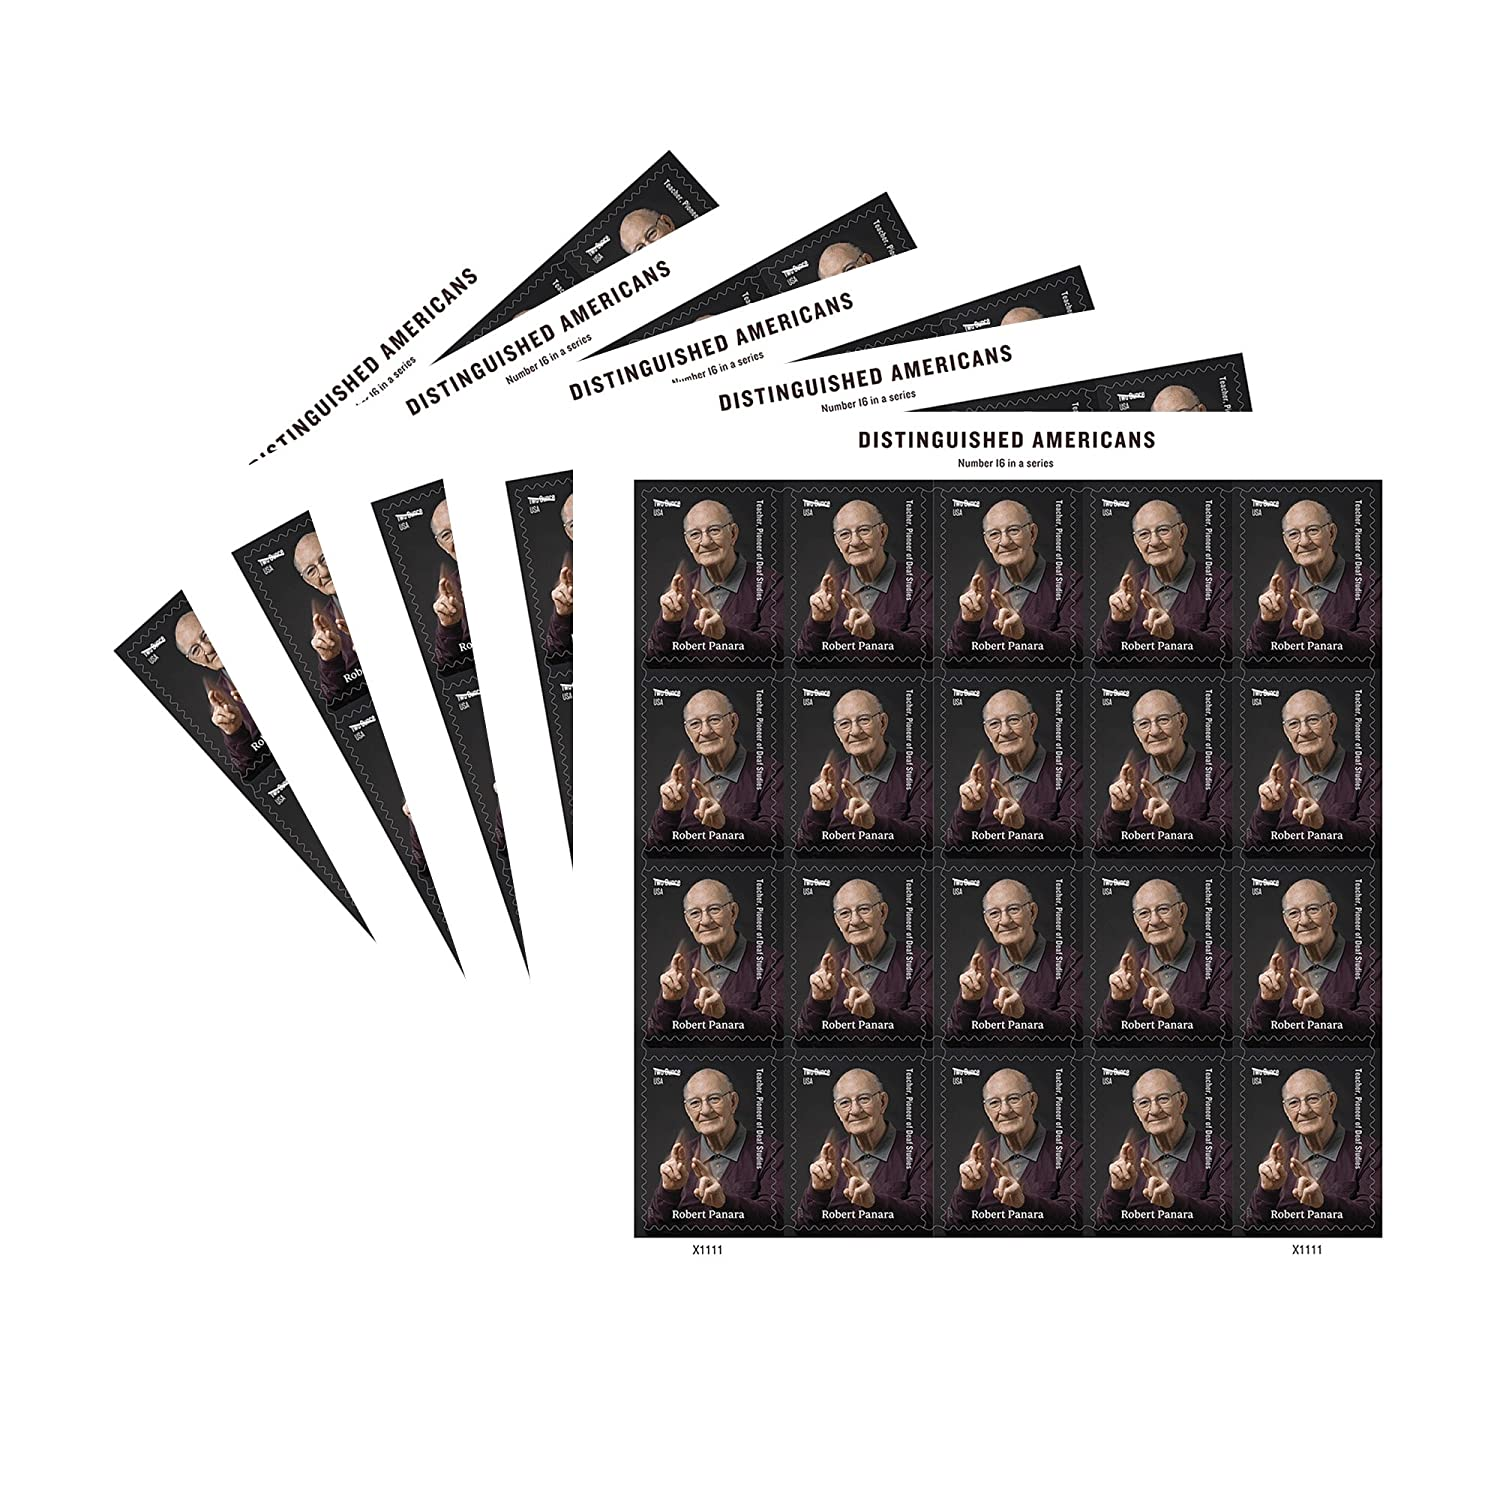 Amazon Robert Panara 5 Sheets Of 20 Forever USPS First Class Two Ounce Postage Stamps Teacher Deaf Studies Office Products